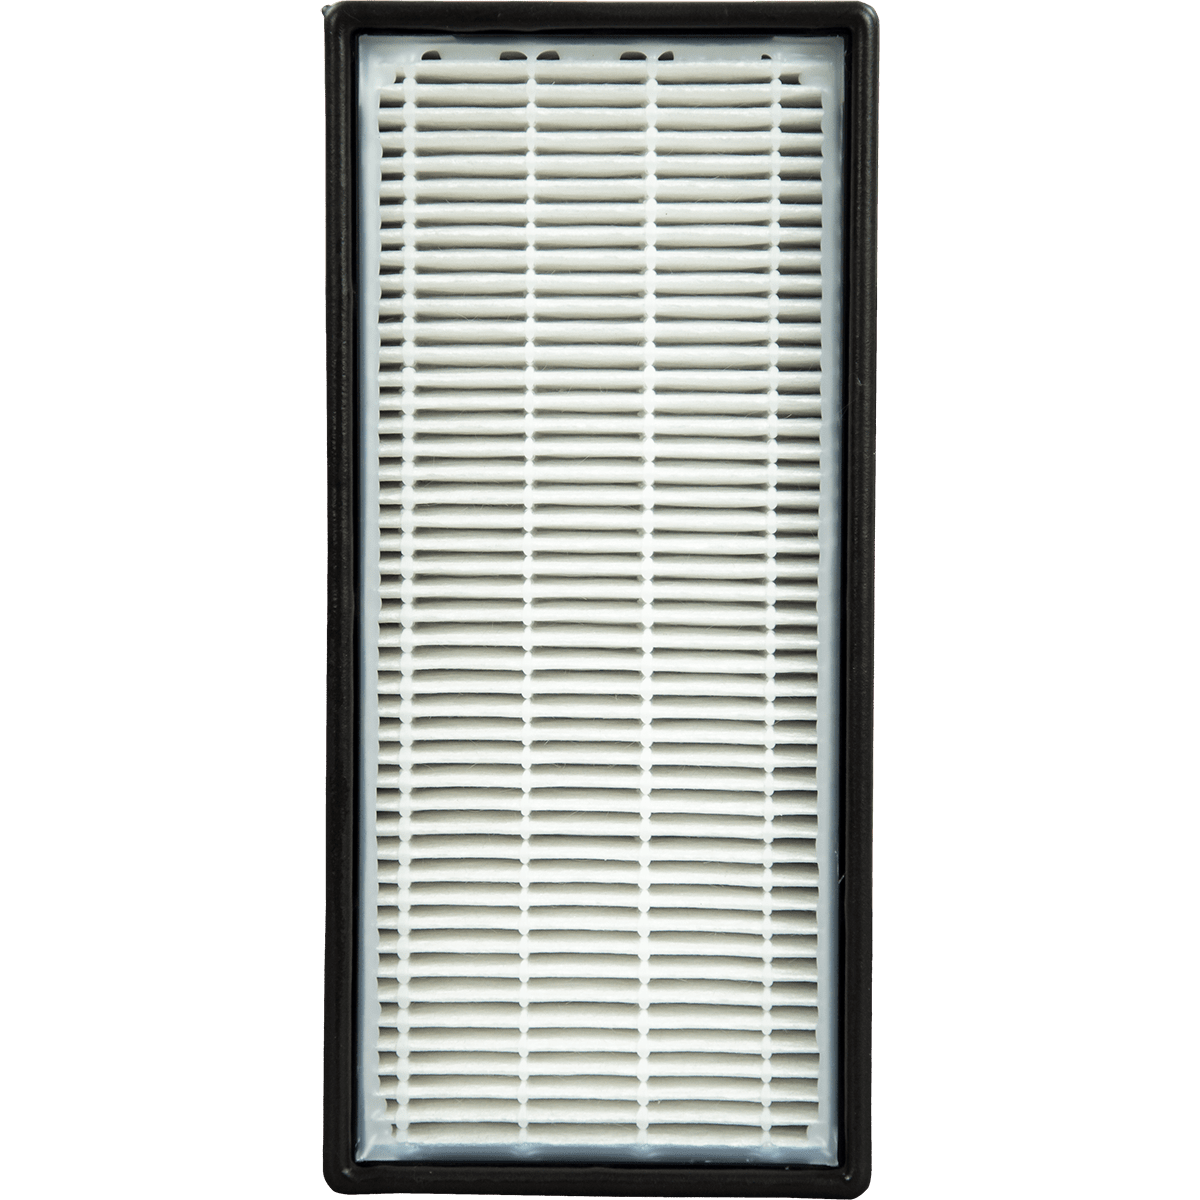 Filter-Monster Replacement Filter Comparable to Honeywell HEPA Filter C wh6630